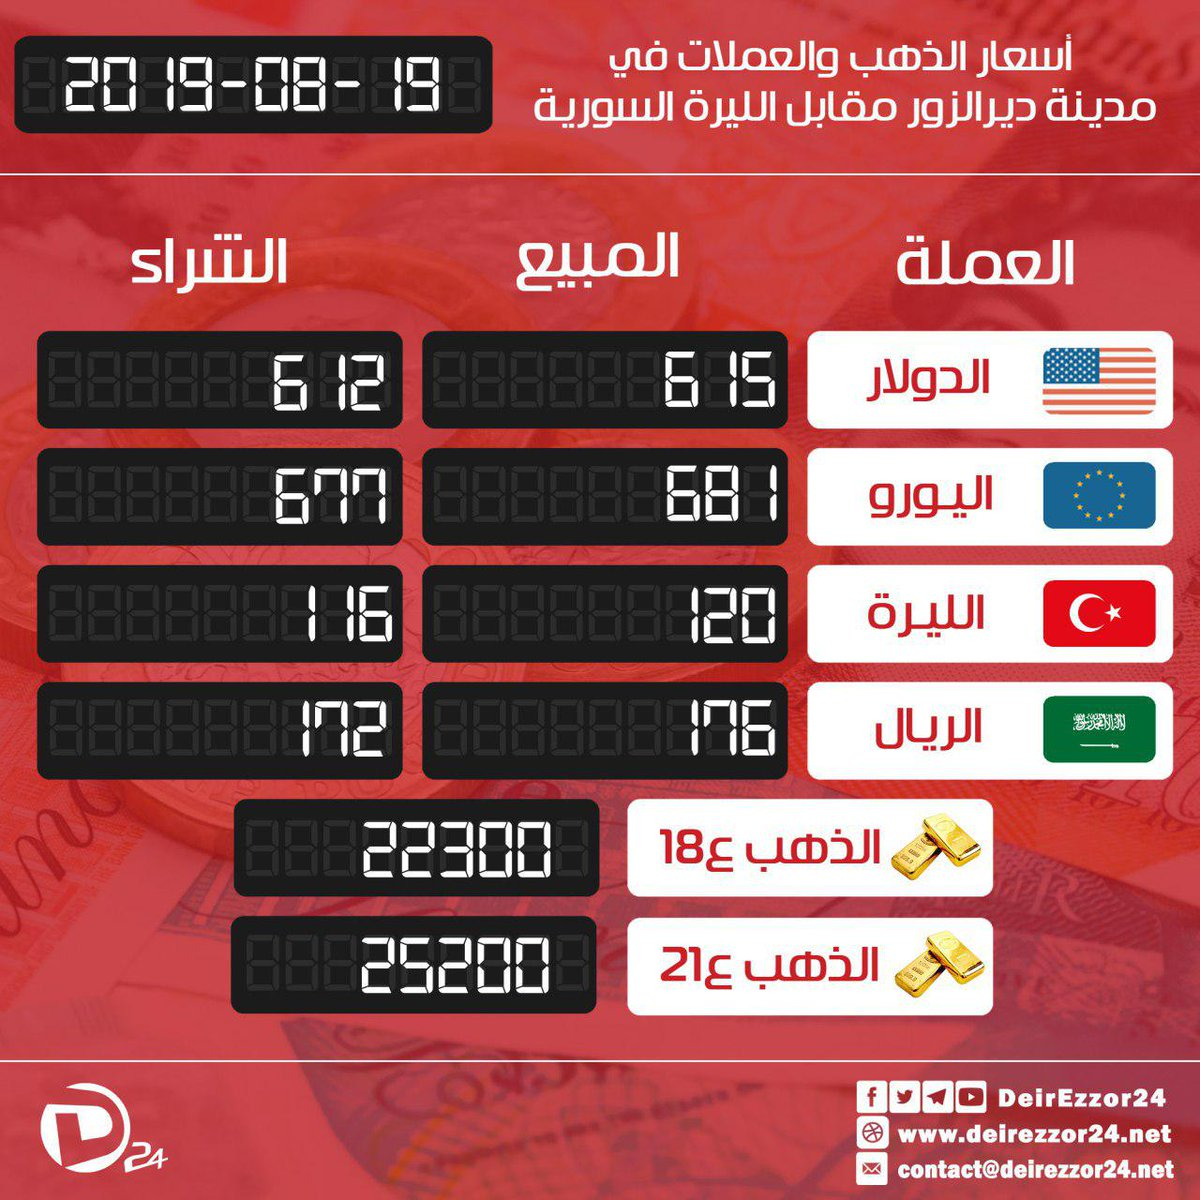 D24 Gold Prices And Exchange Rates Of